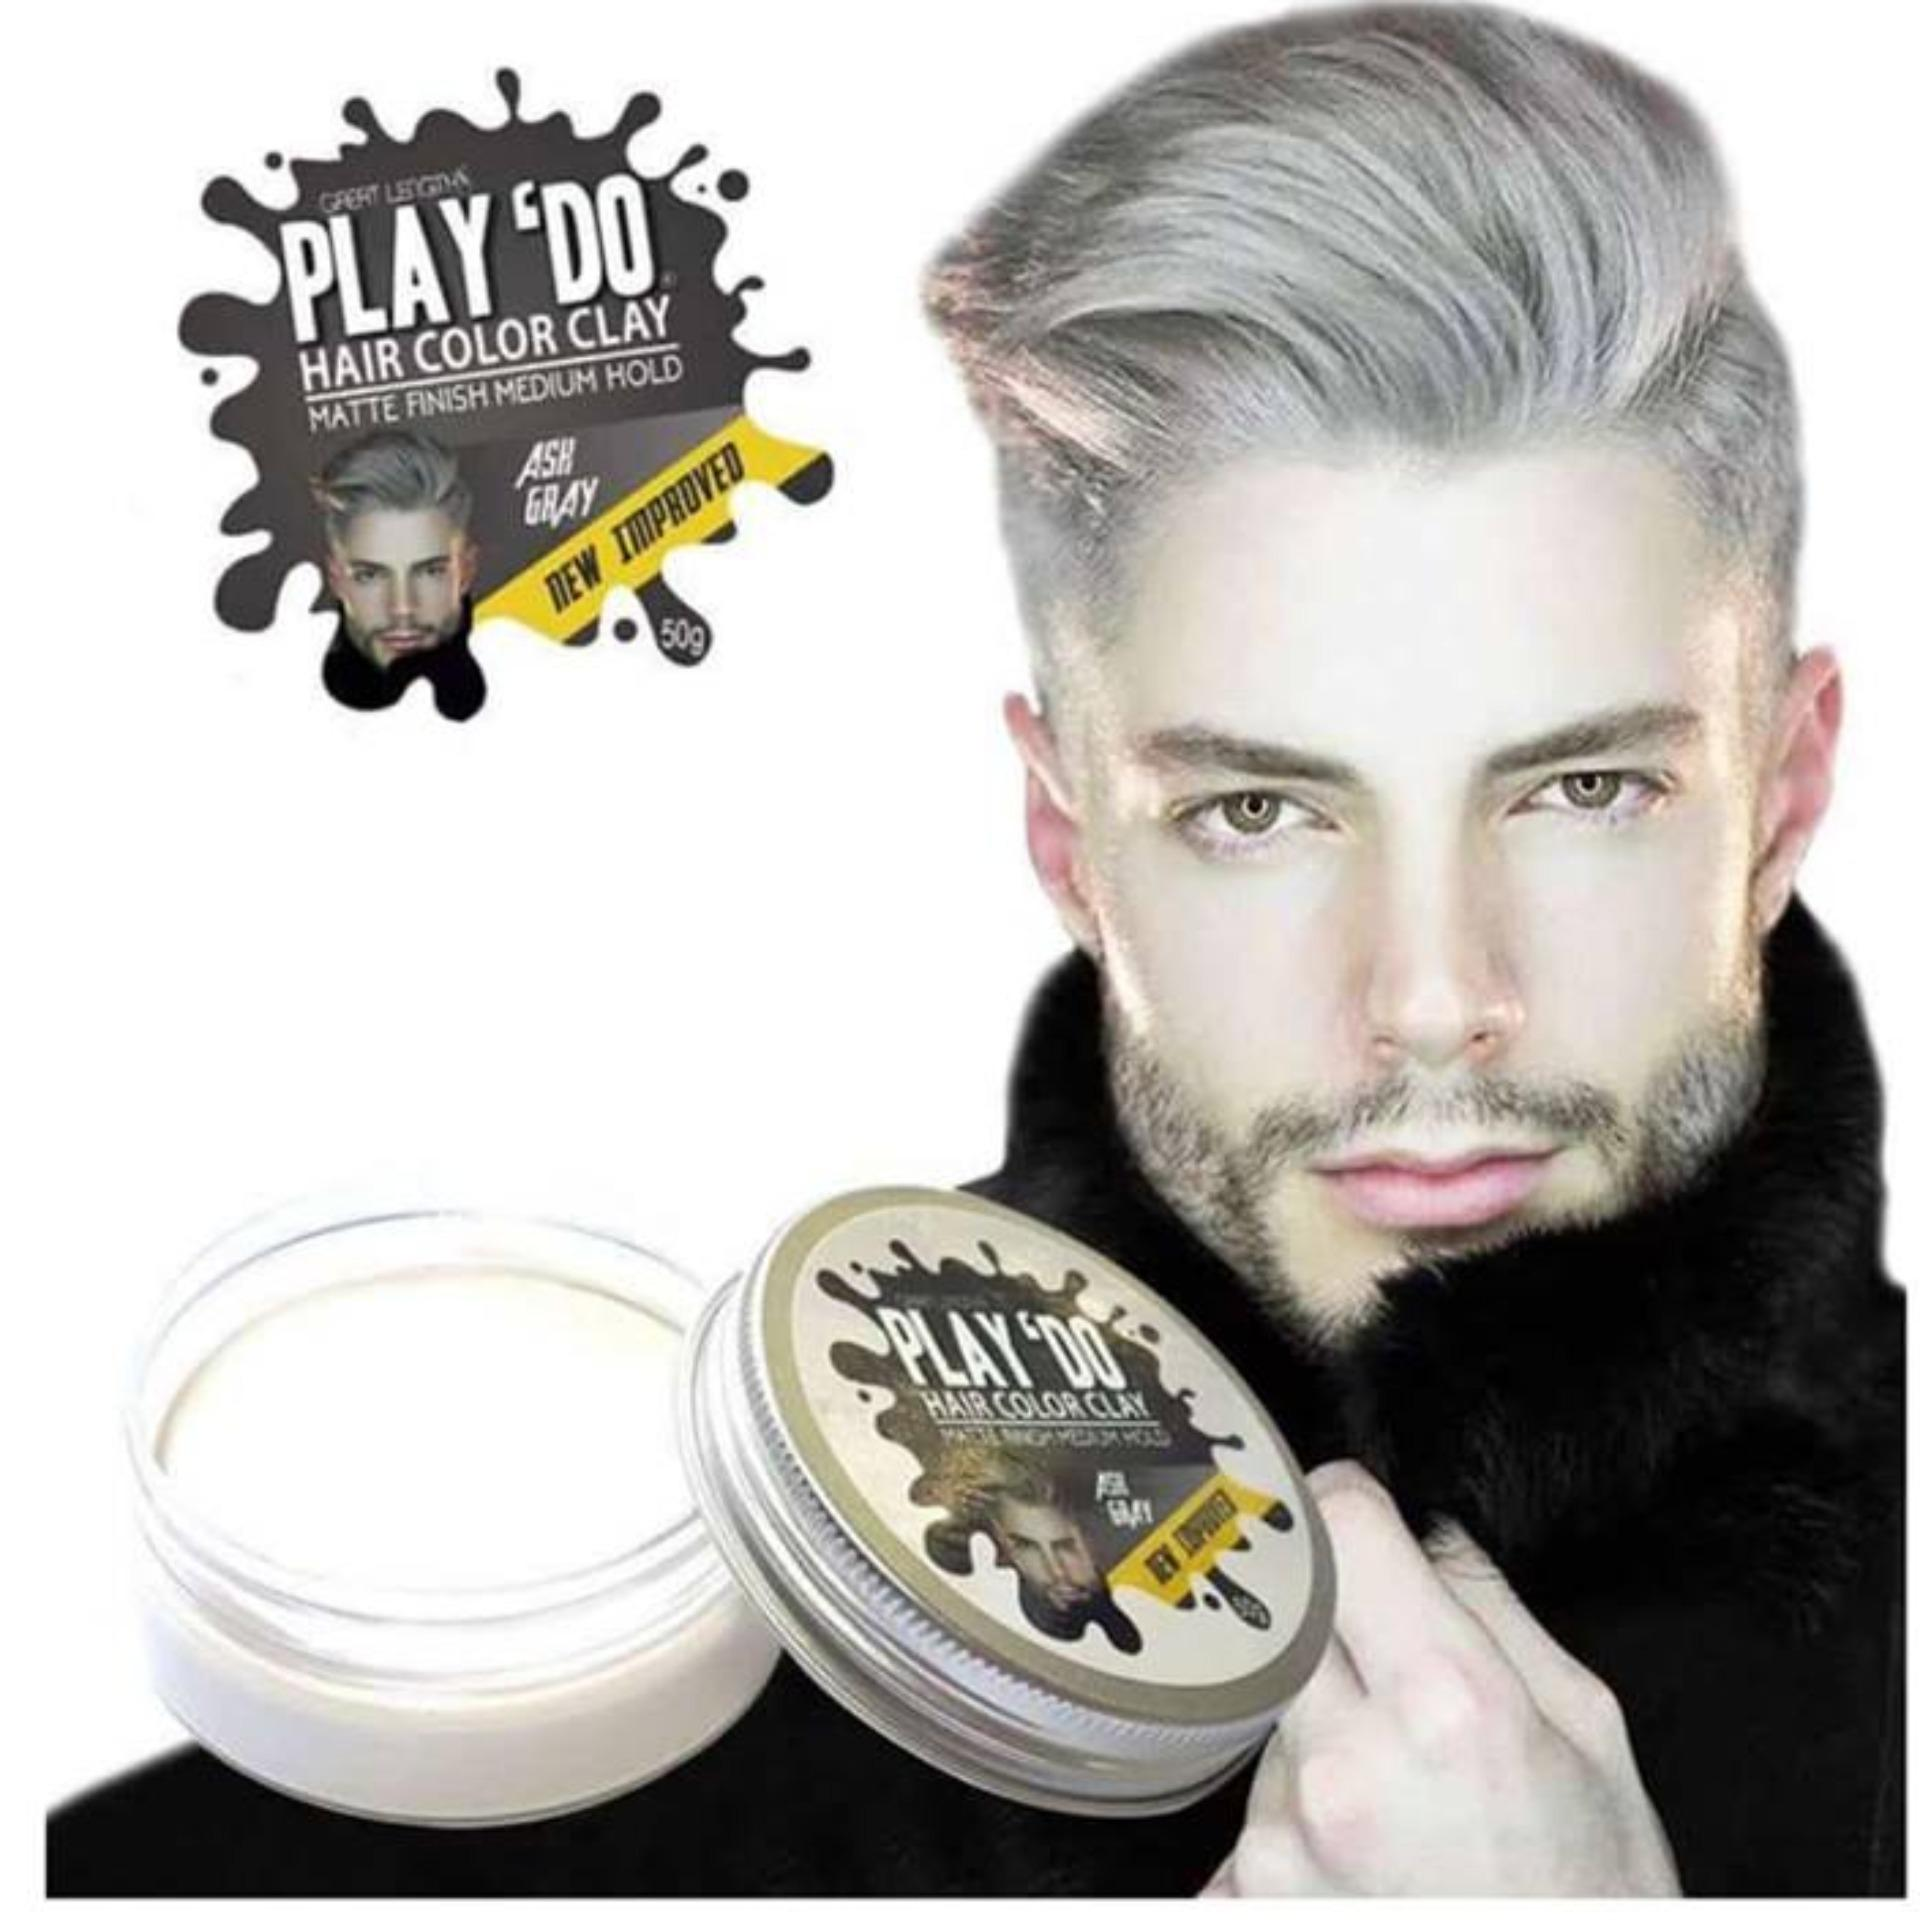 Play 'Do Hair Color Clay Ash Gray ( New Improved ) image